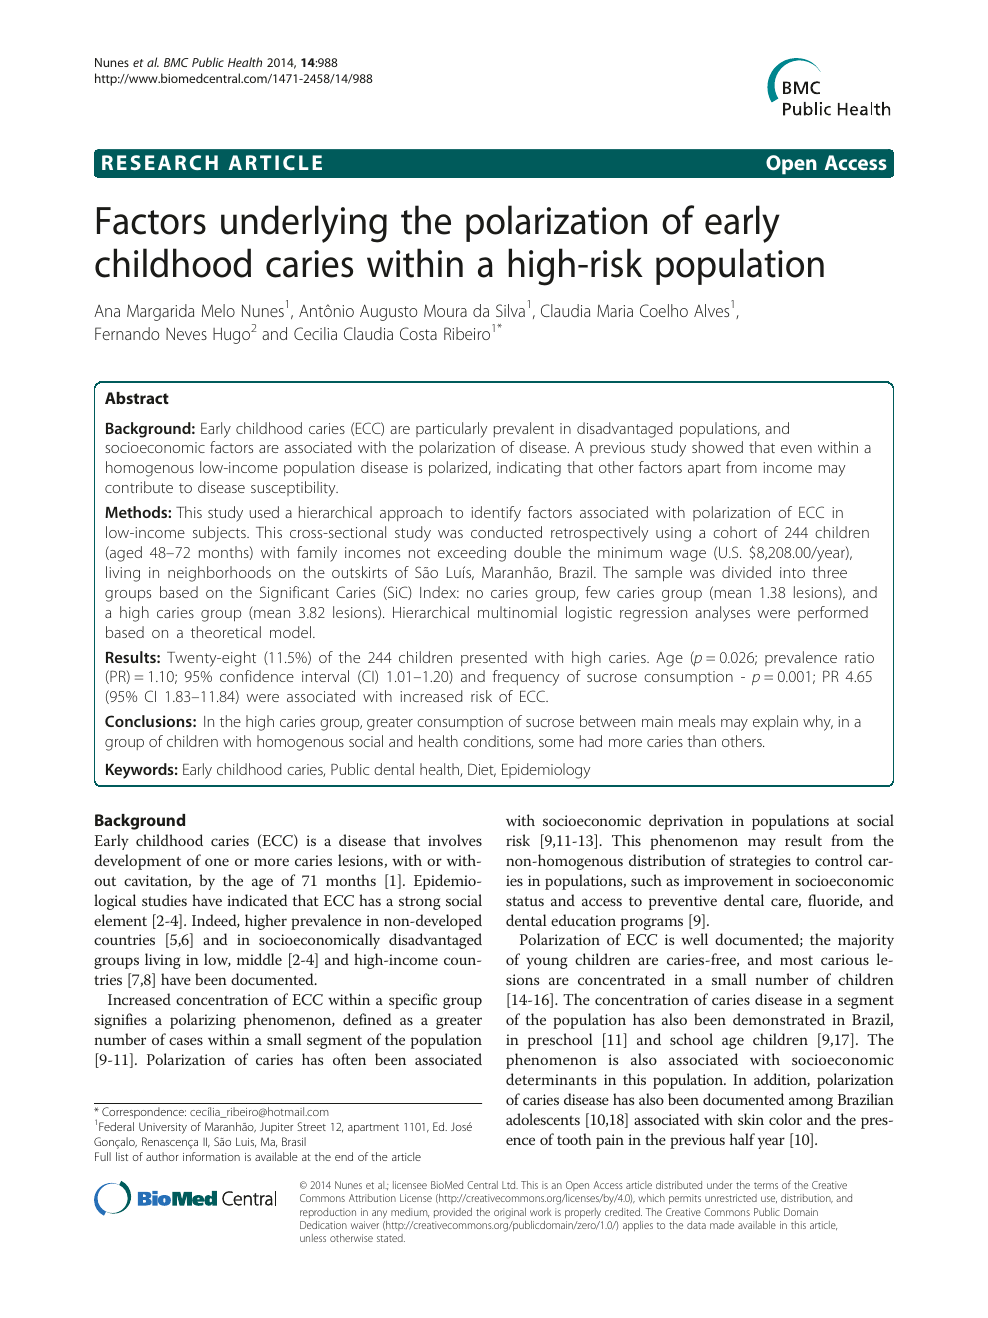 Factors underlying the polarization of early childhood